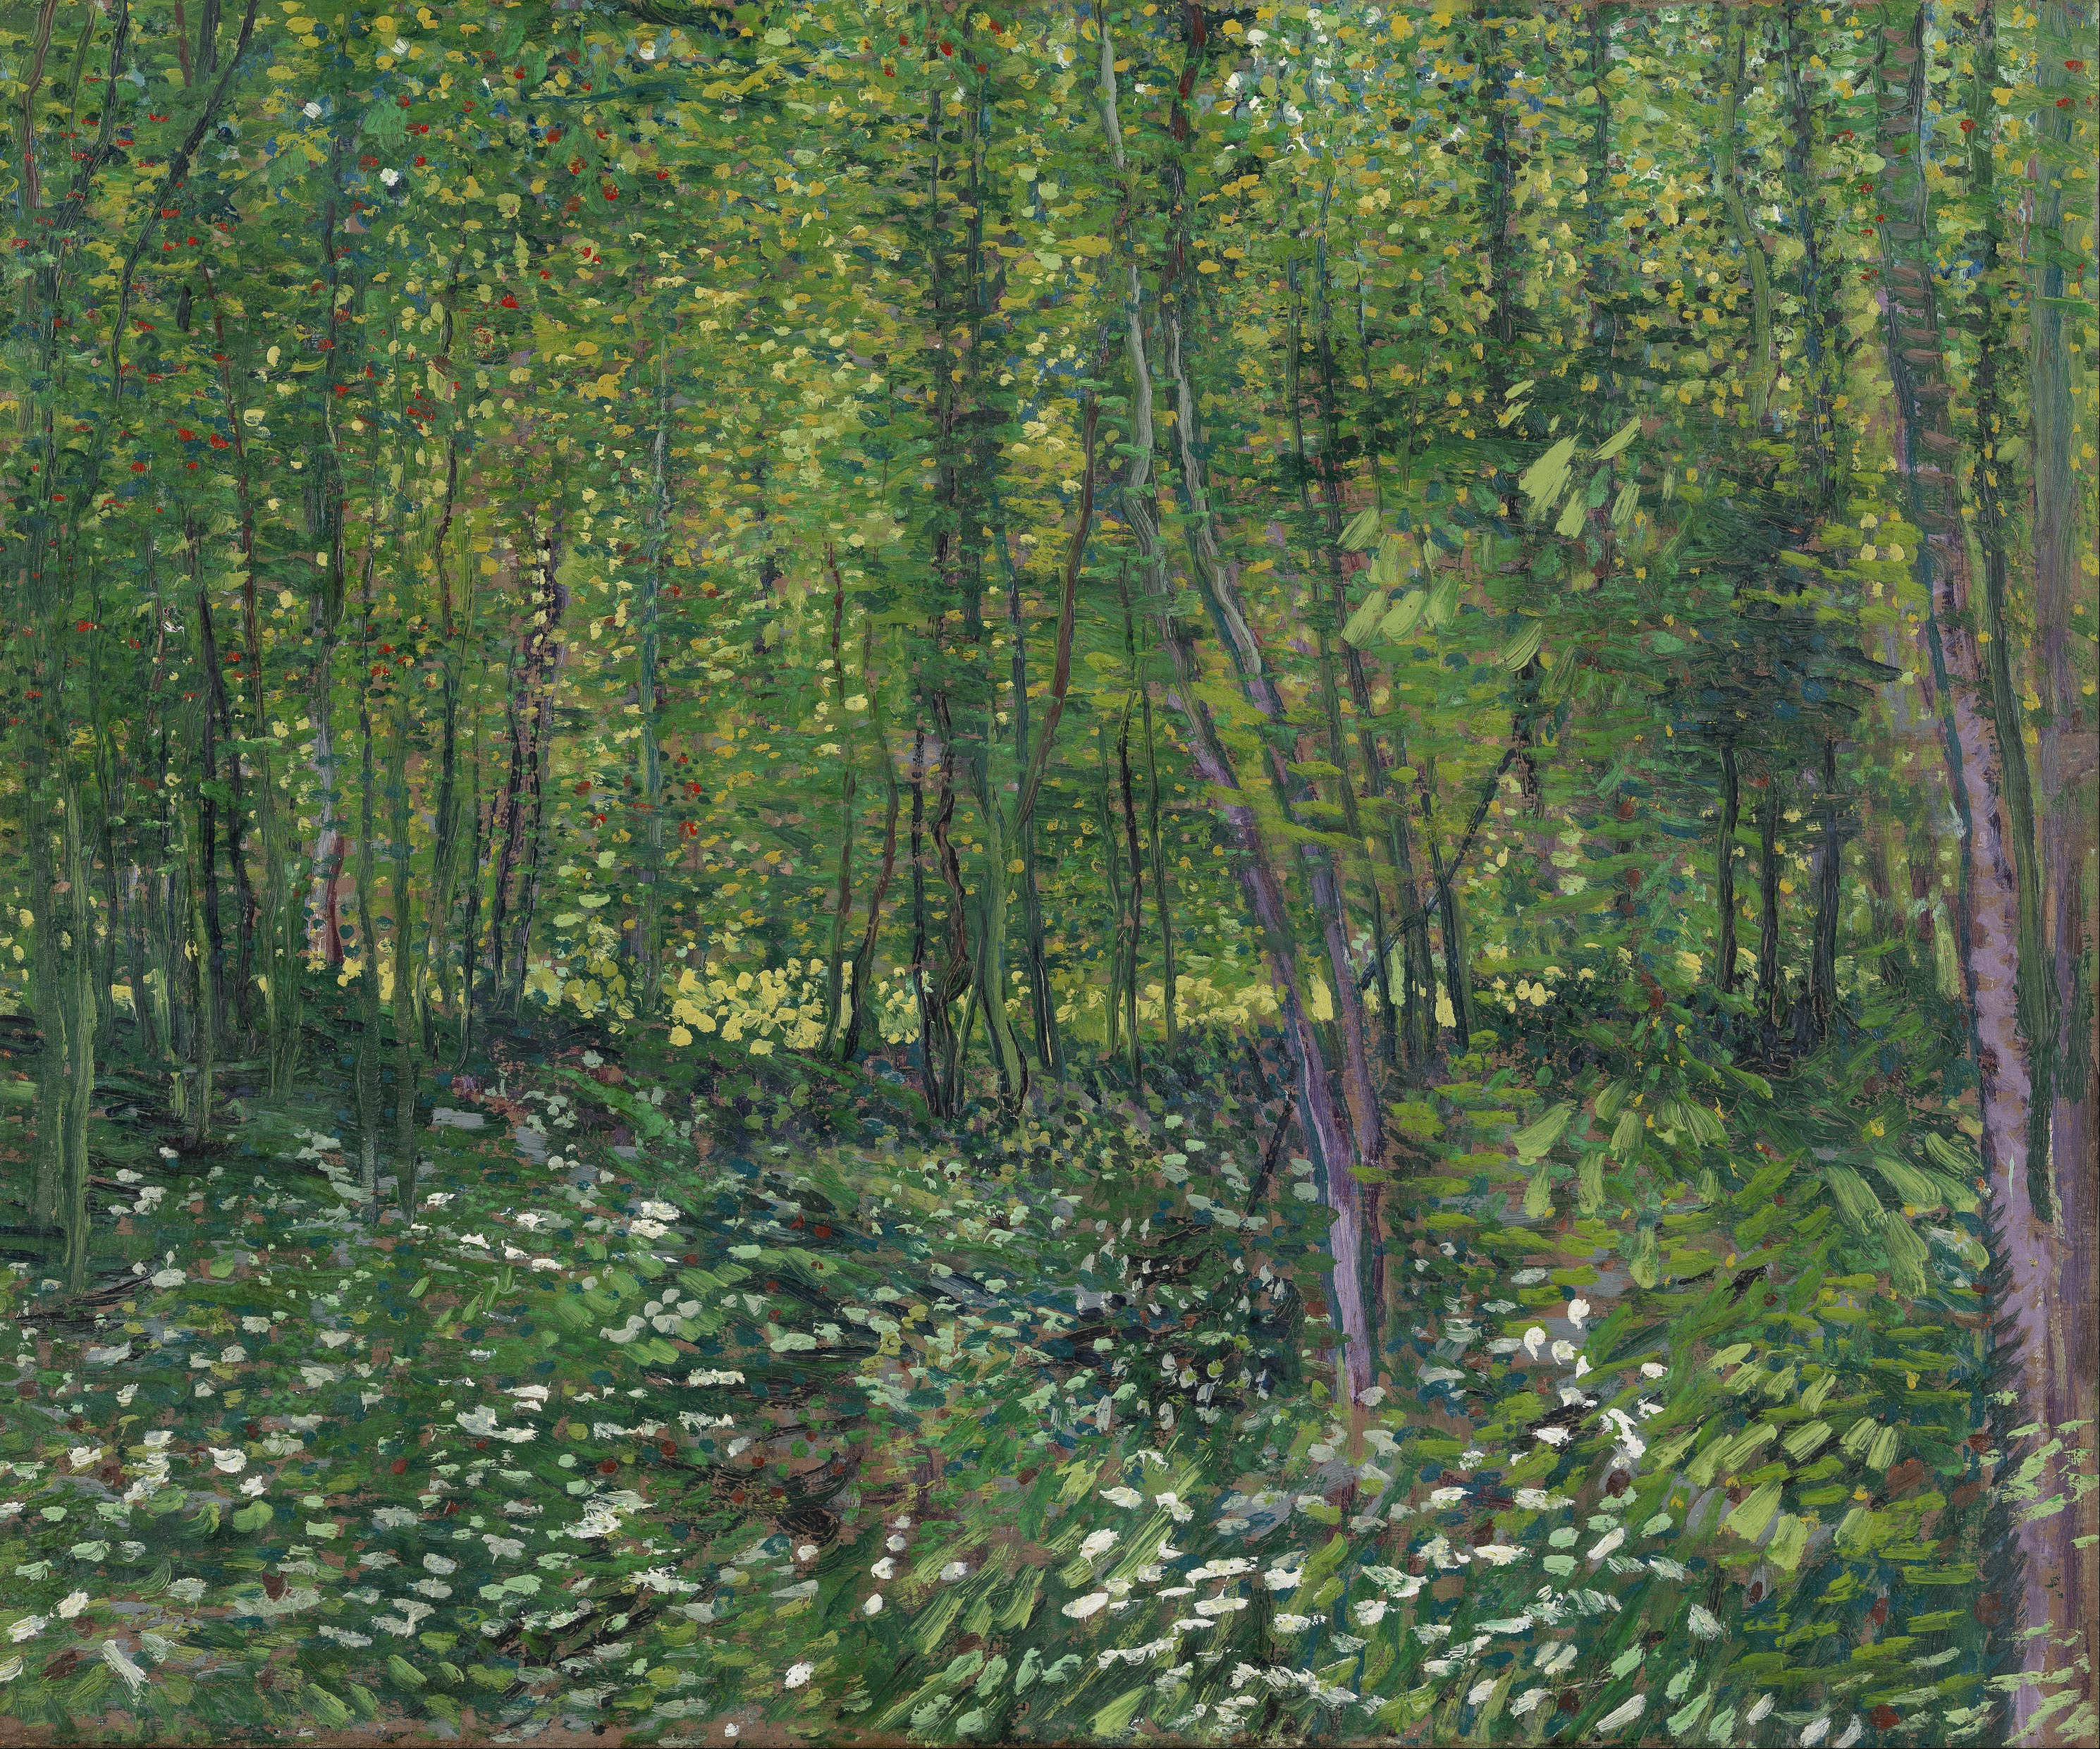 File:Vincent van Gogh - Trees and undergrowth